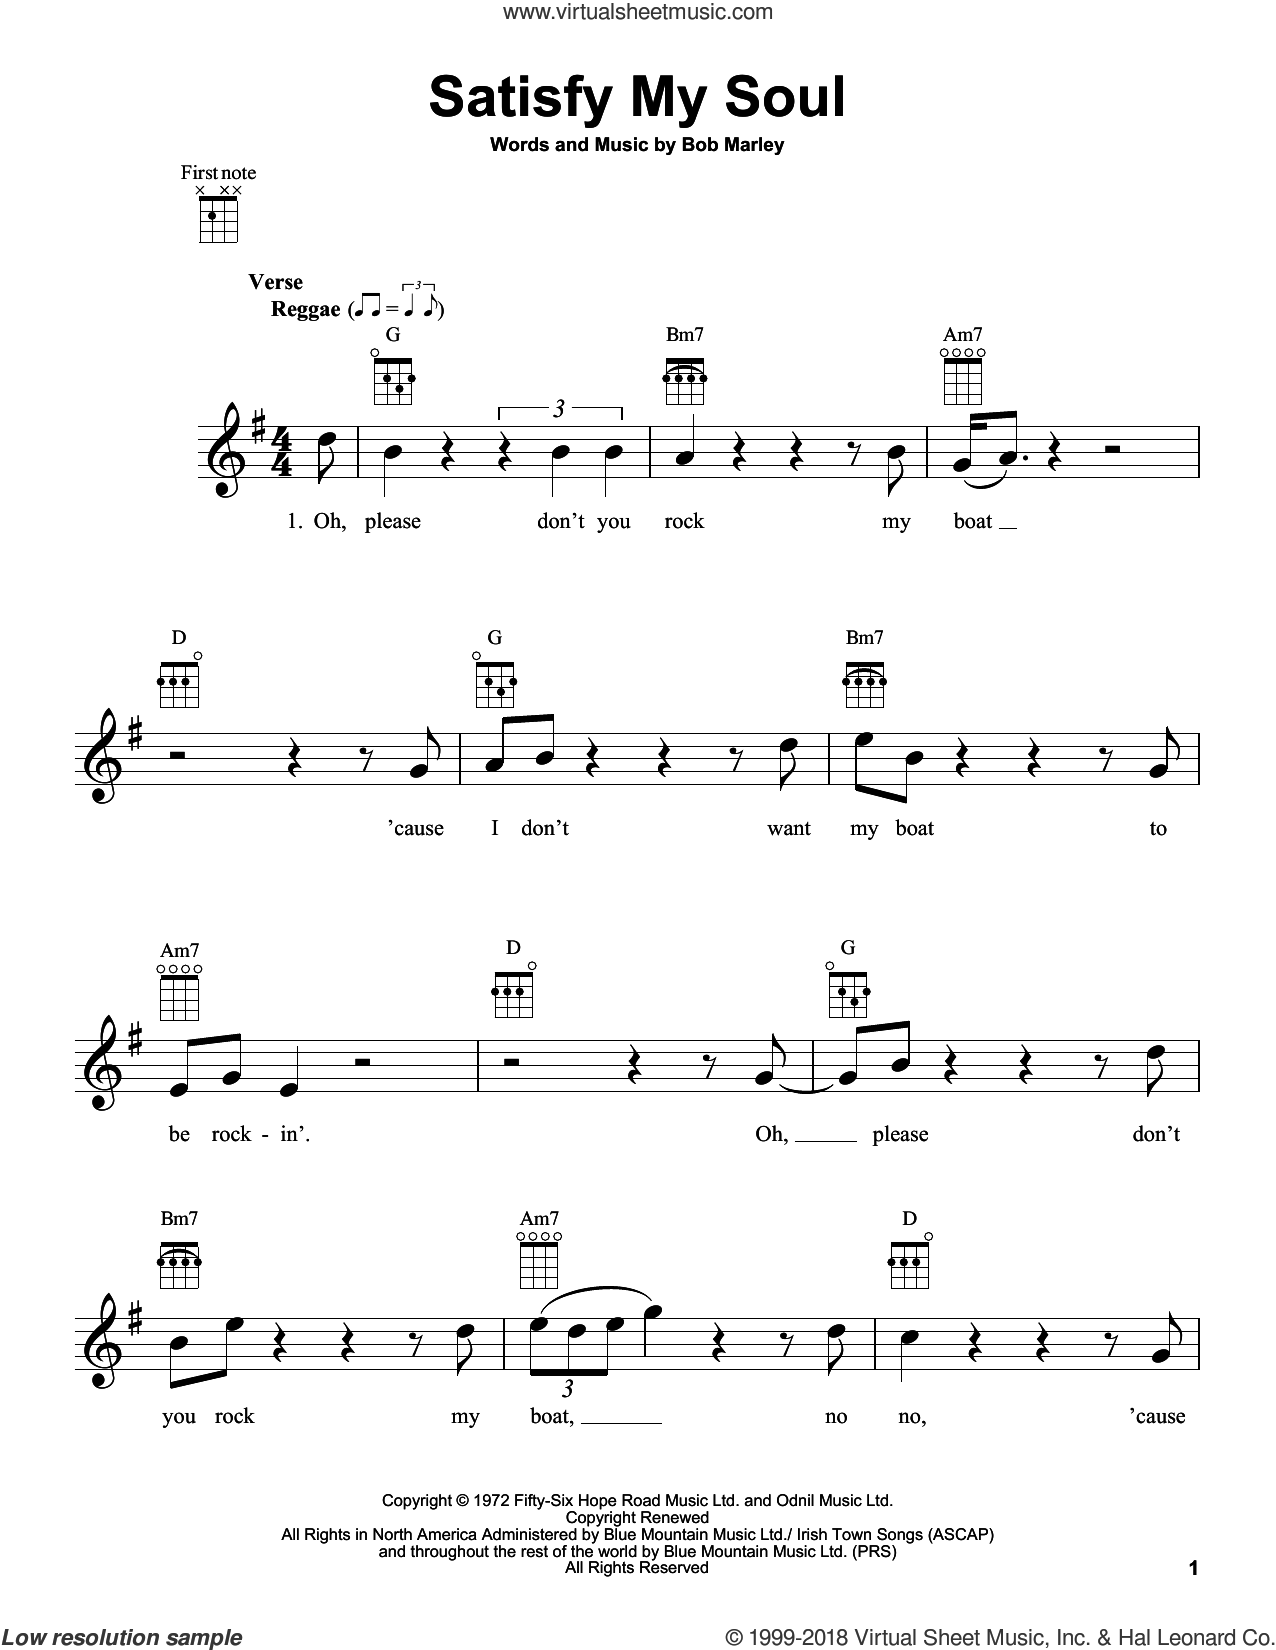 Satisfy My Soul sheet music for ukulele by Bob Marley, intermediate skill level